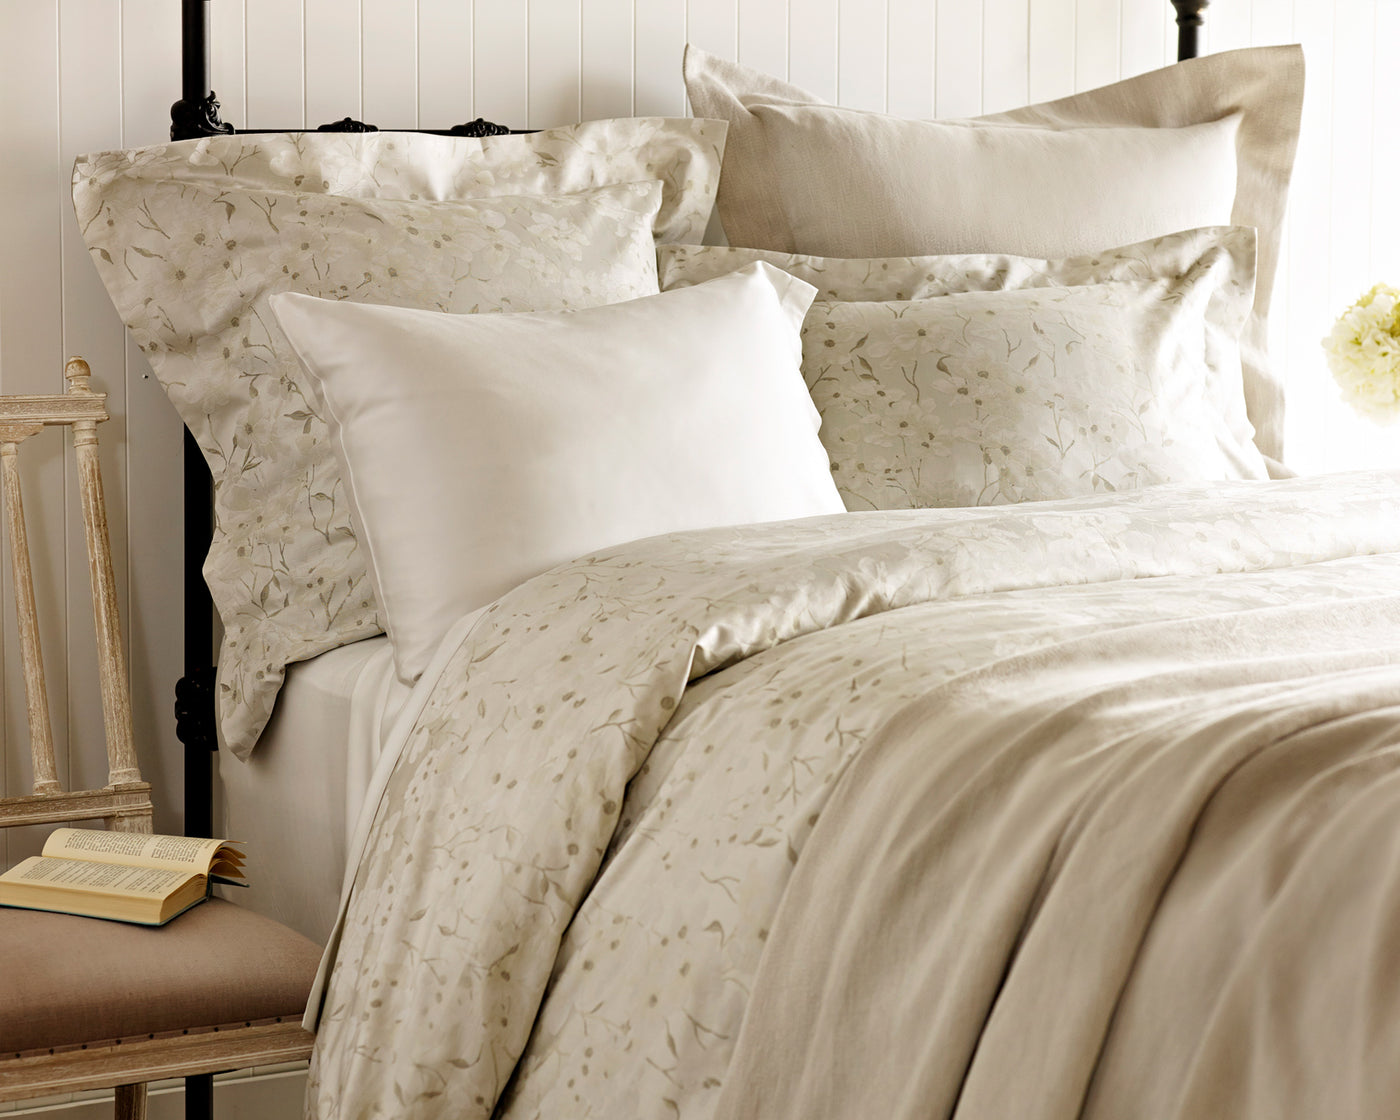 Savannah | Ruffled Bedskirt